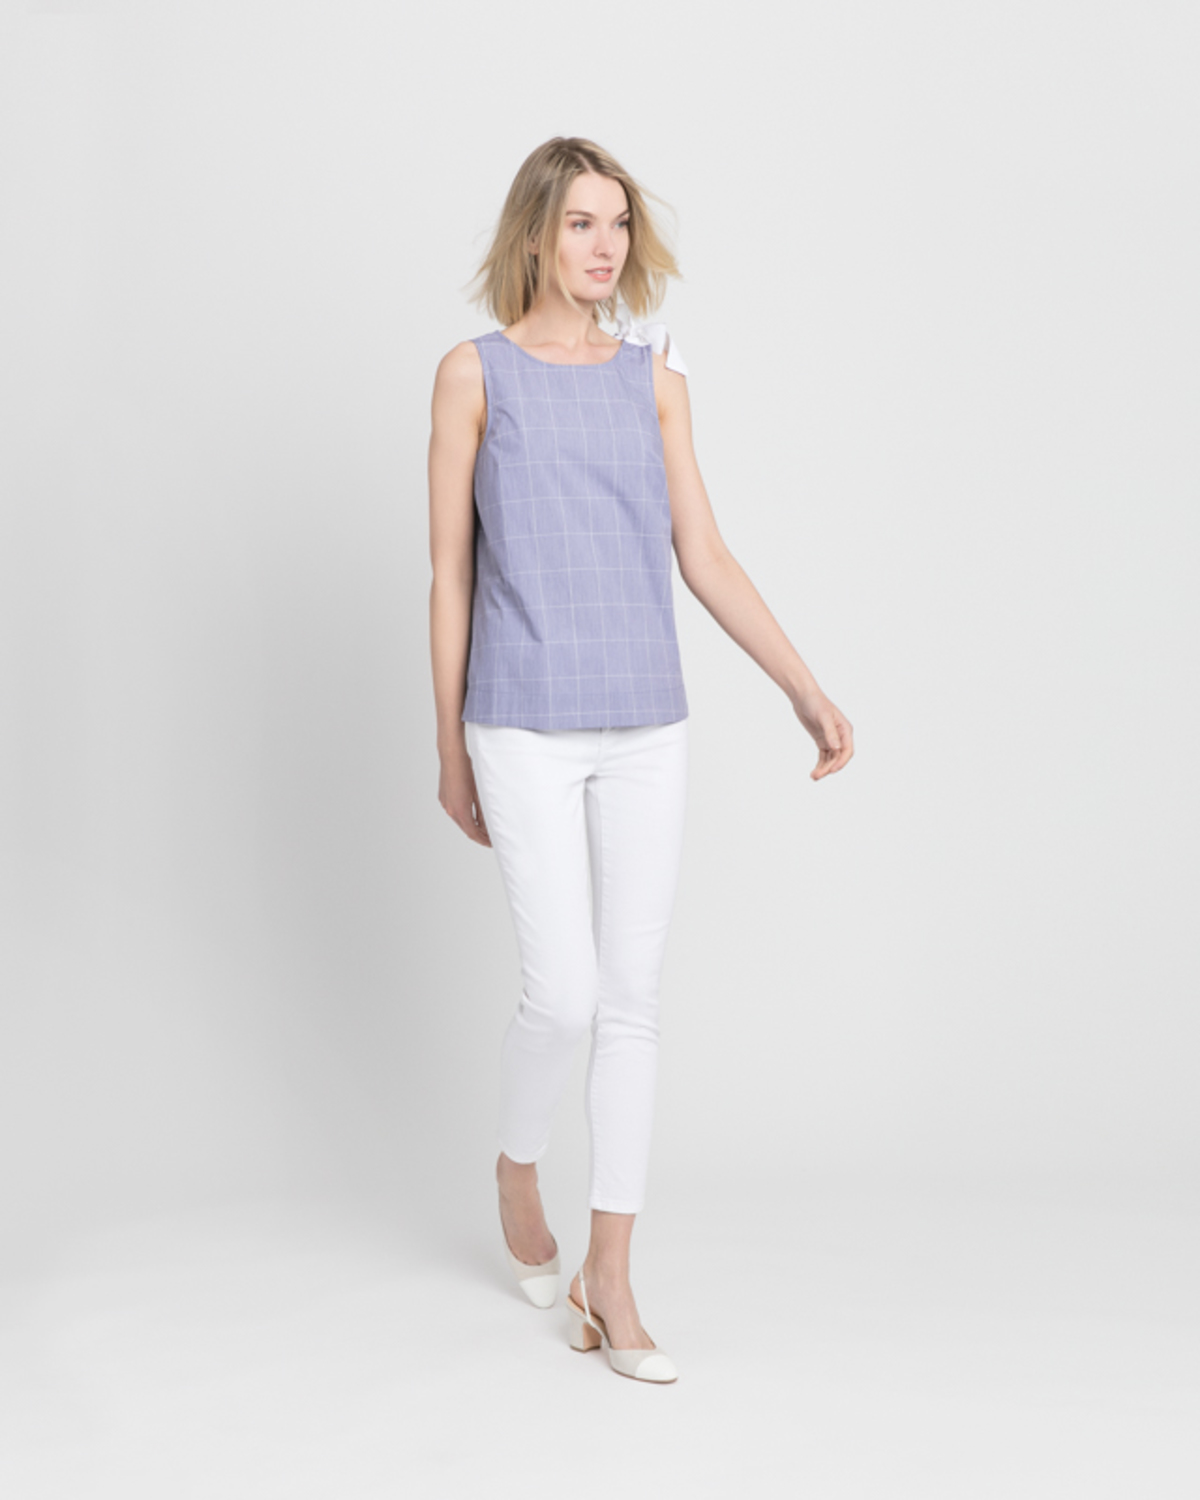 Sleeveless blouse with bow detail blue ivory front ivanka trump